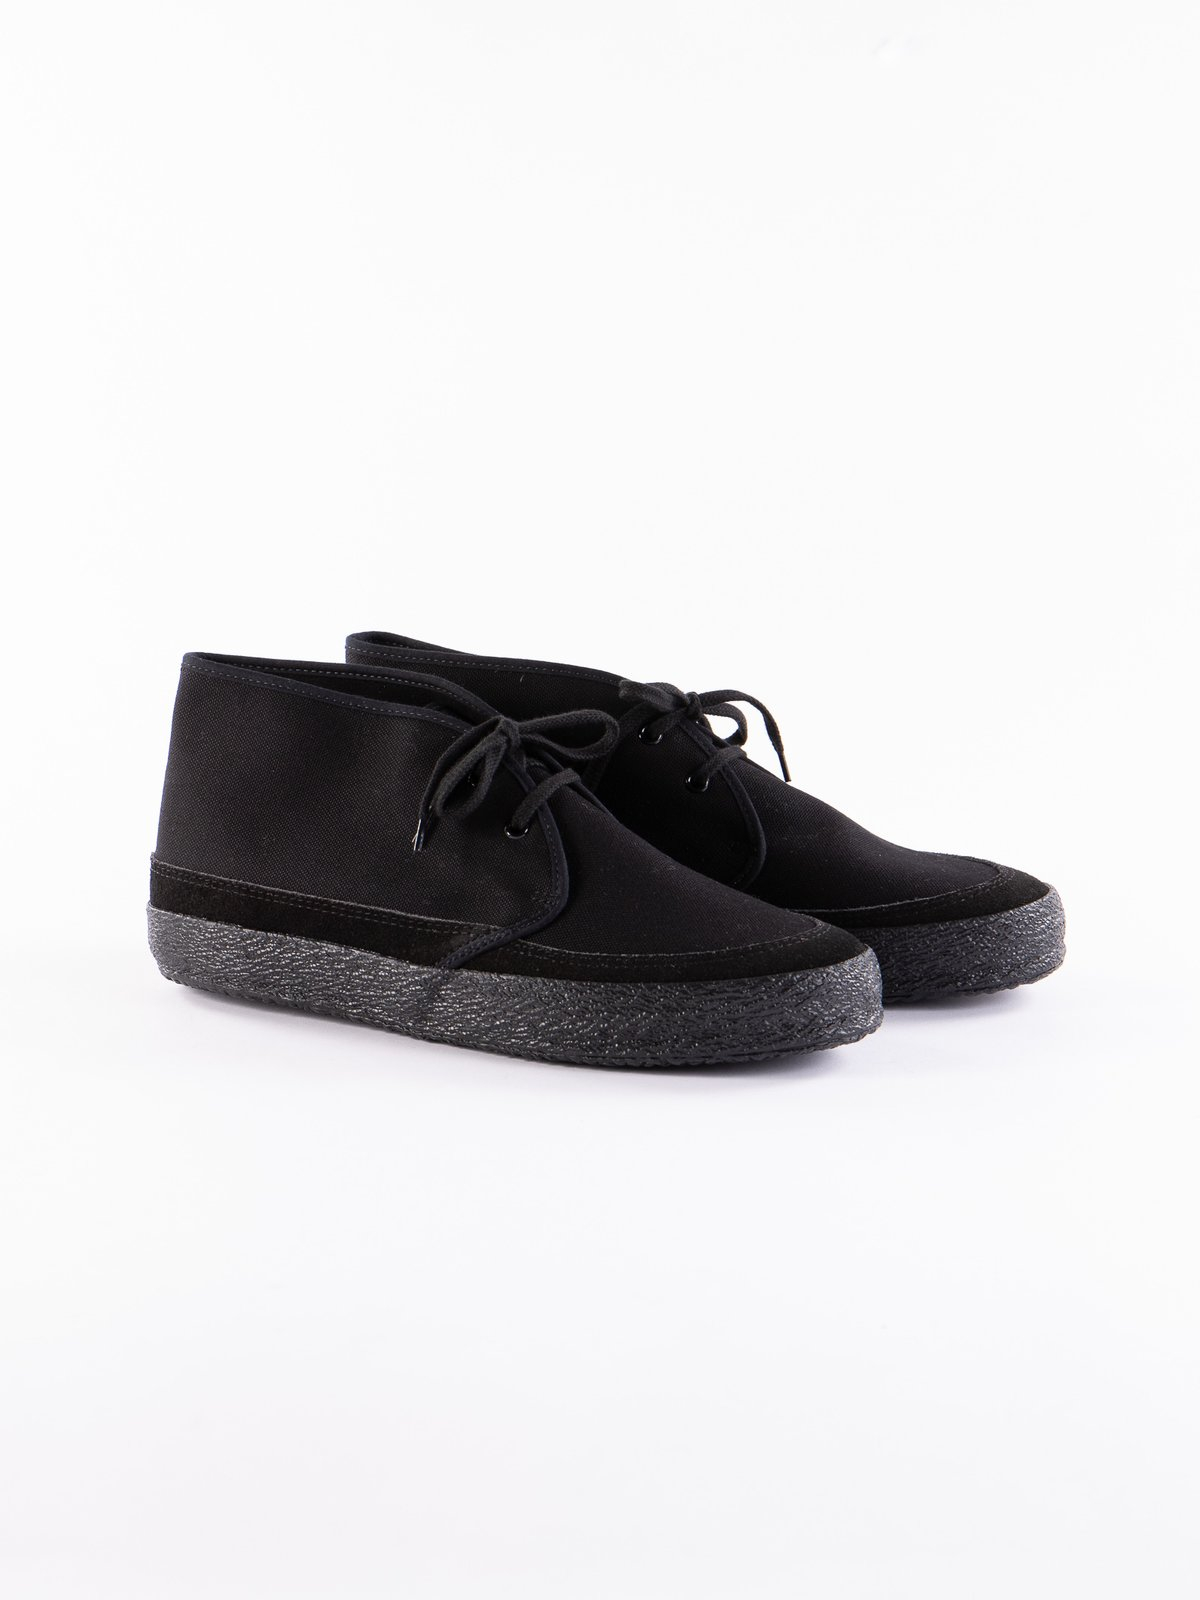 Black Sloth Chukka - Image 1